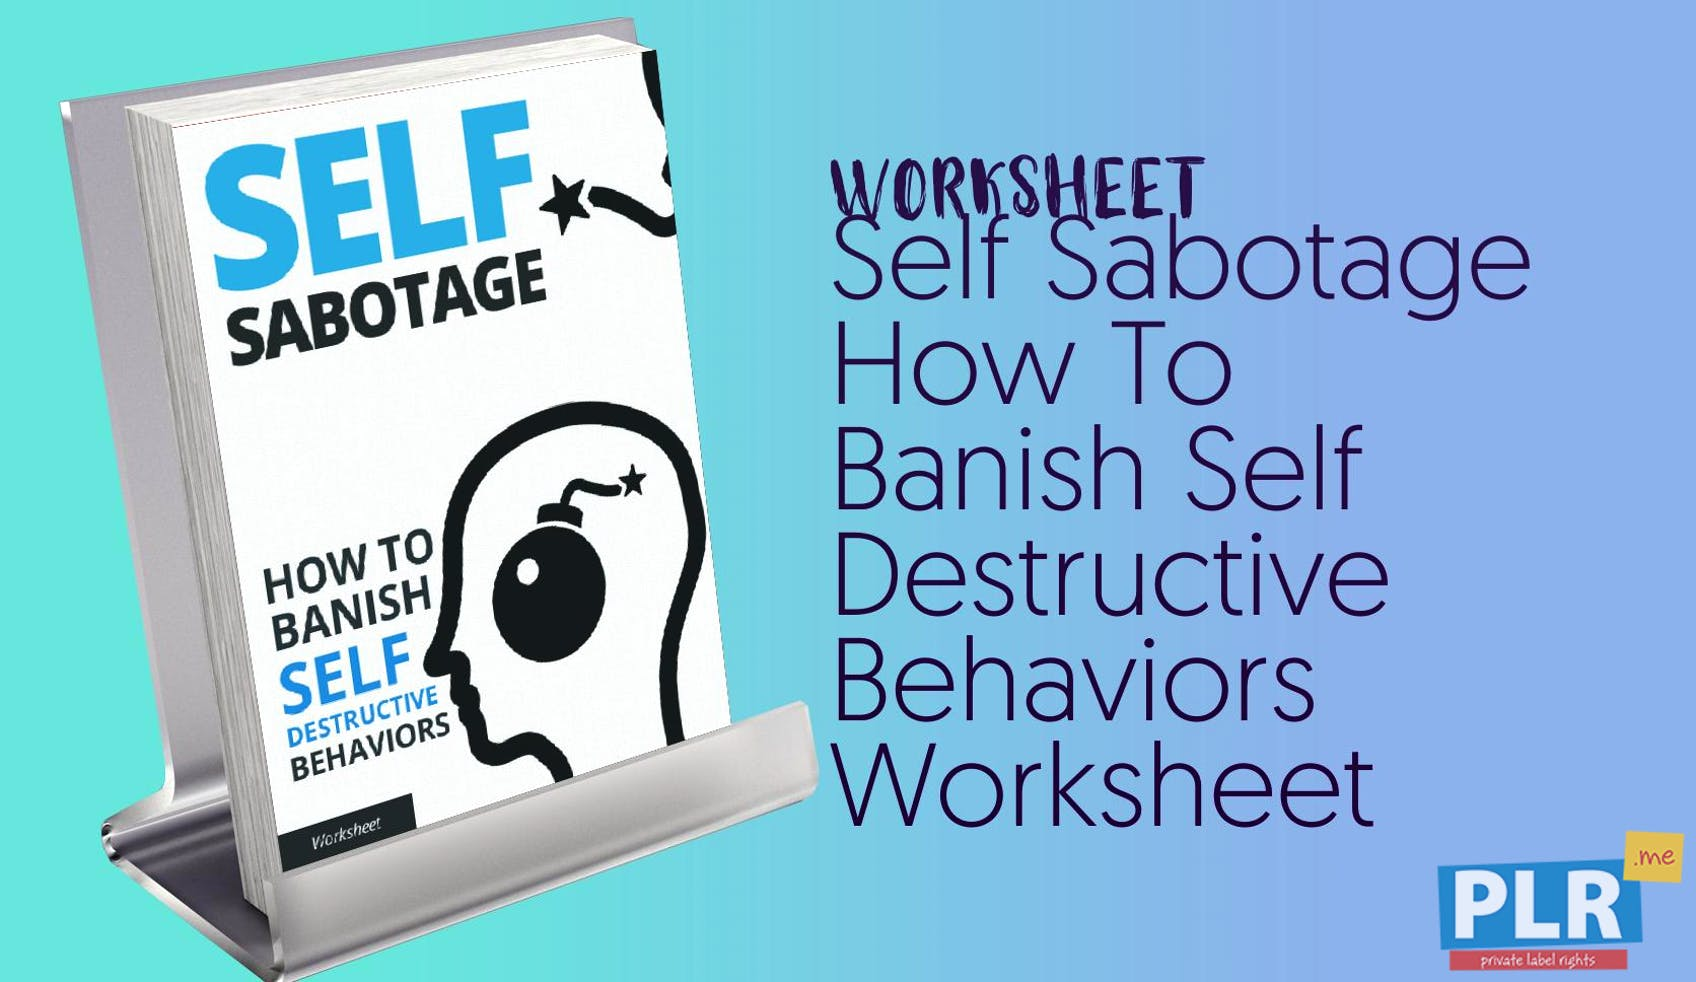 PLR Worksheets - Self Sabotage How To Banish Self Destructive ...